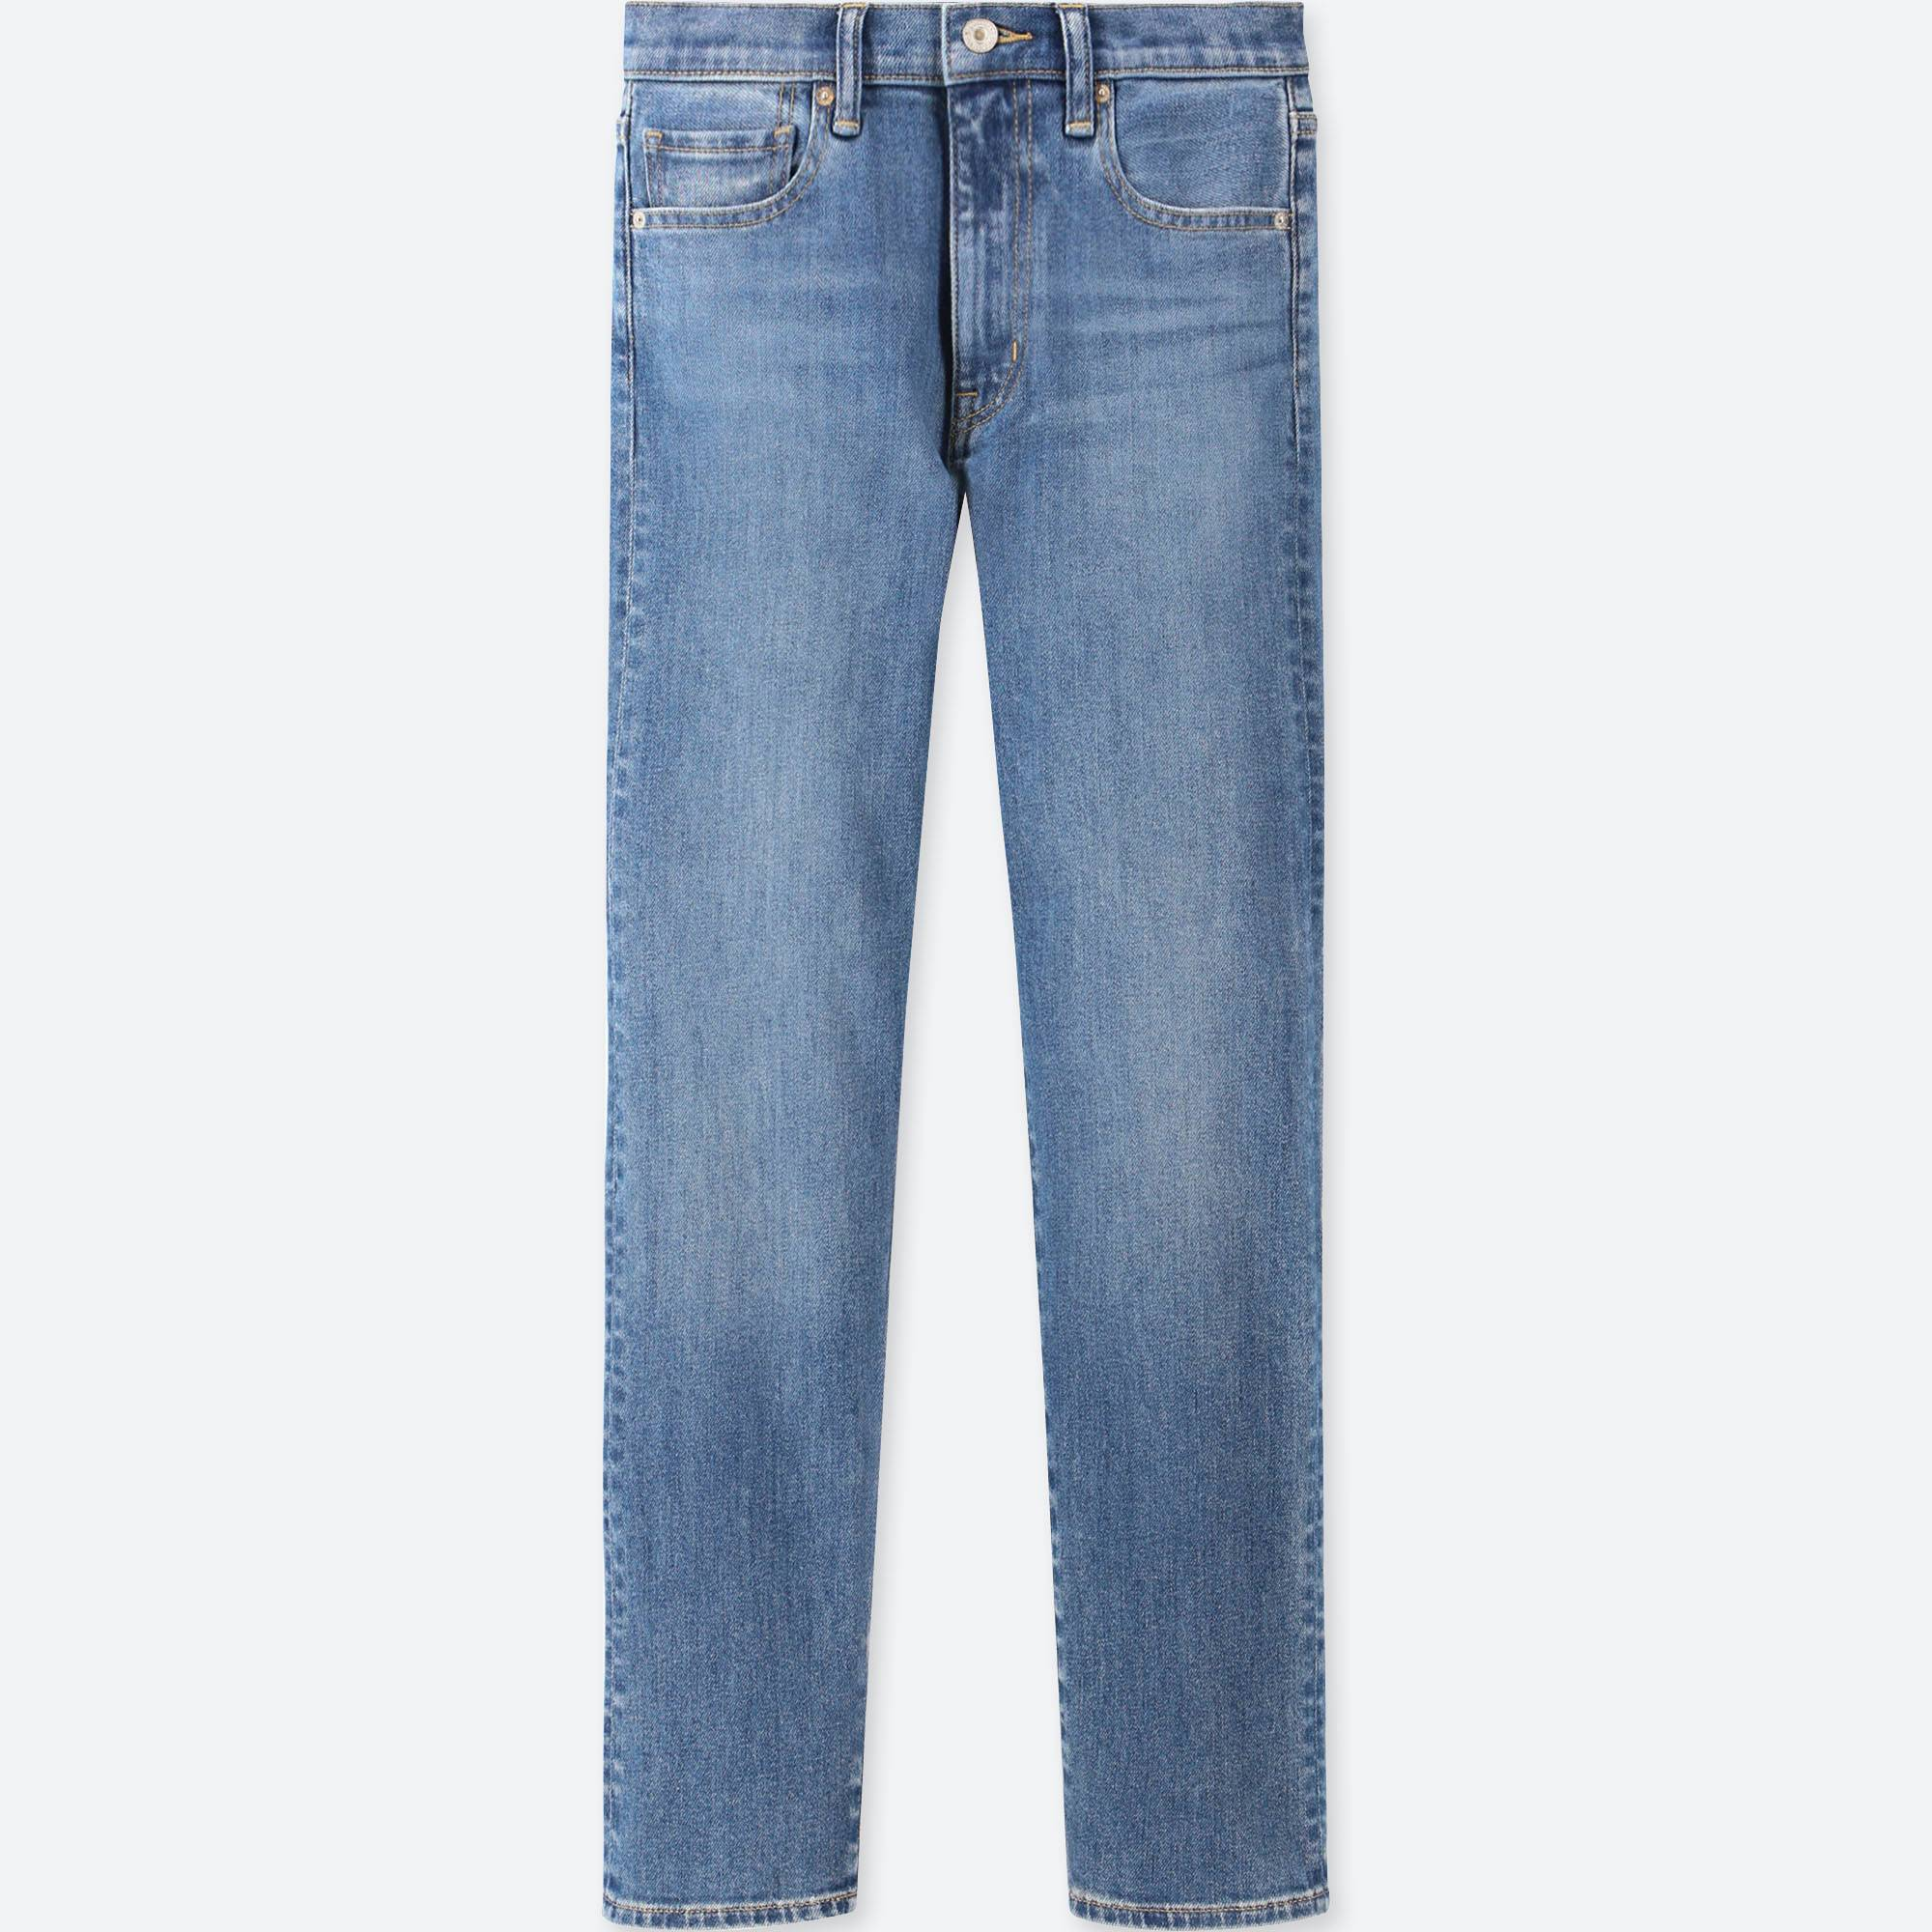 UNIQLO / Jeans women high-rise straight jeans